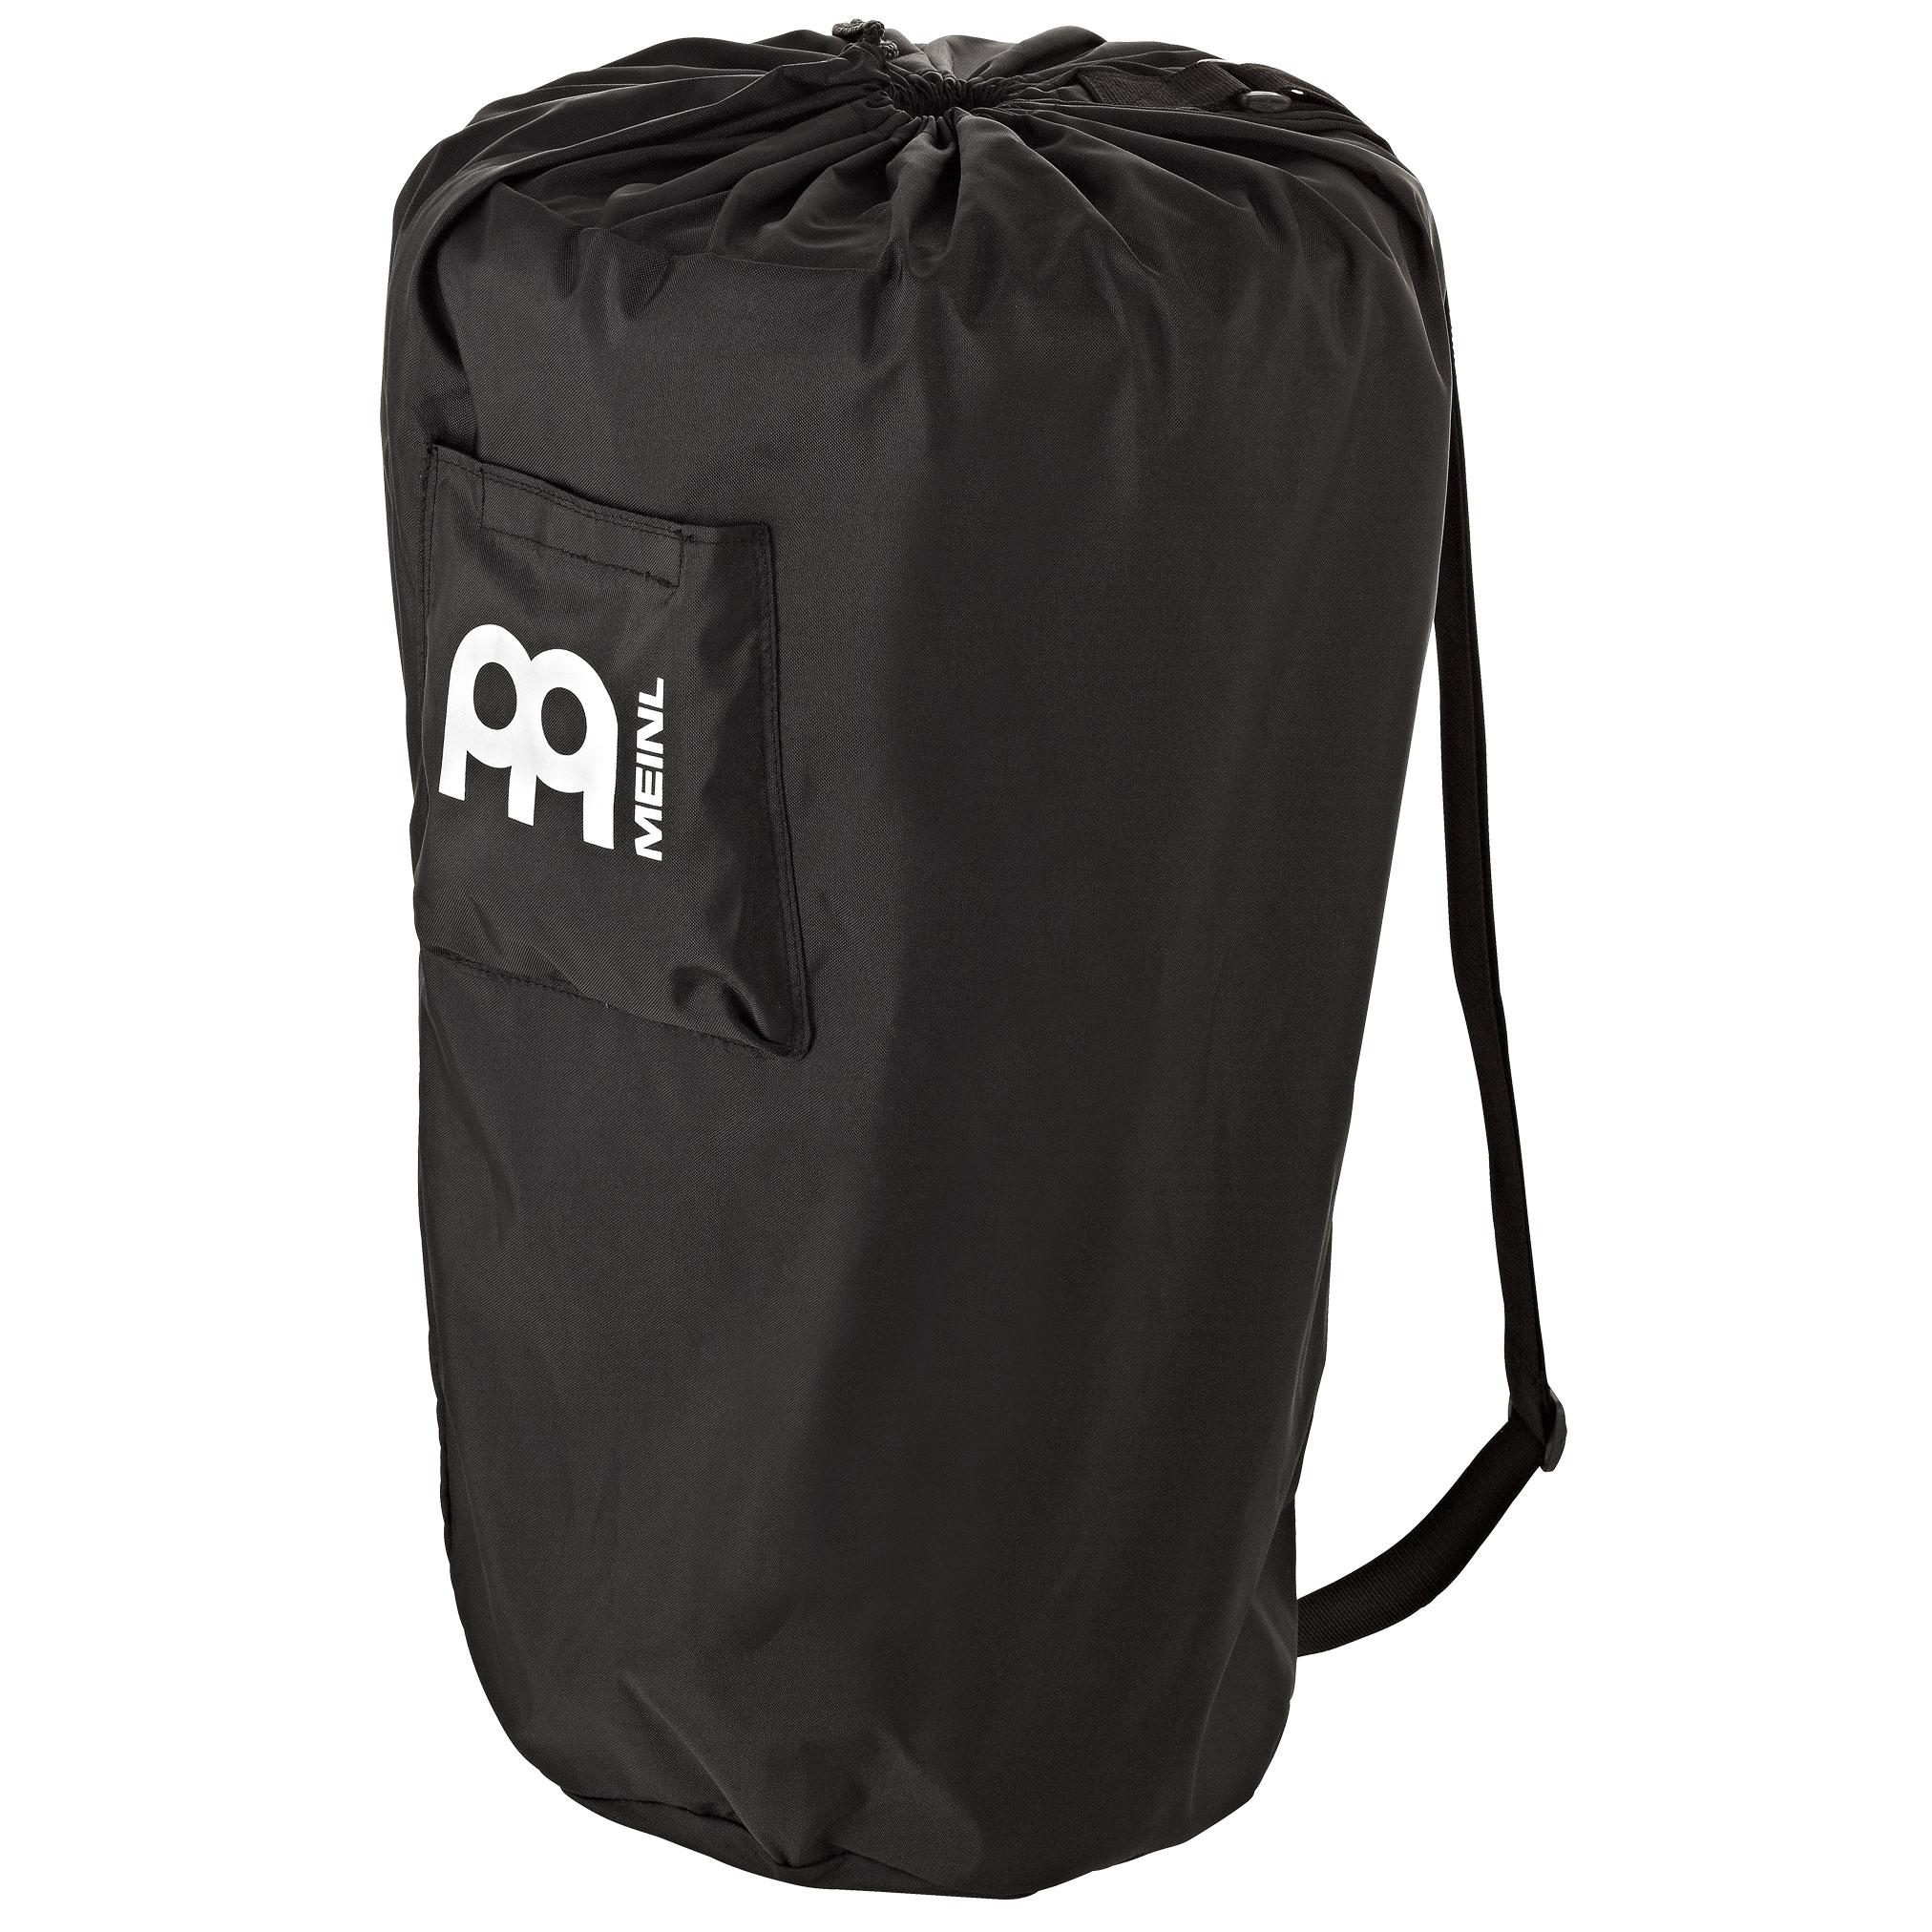 Meinl Black Djembe Gig Bag for Any Size Djembe